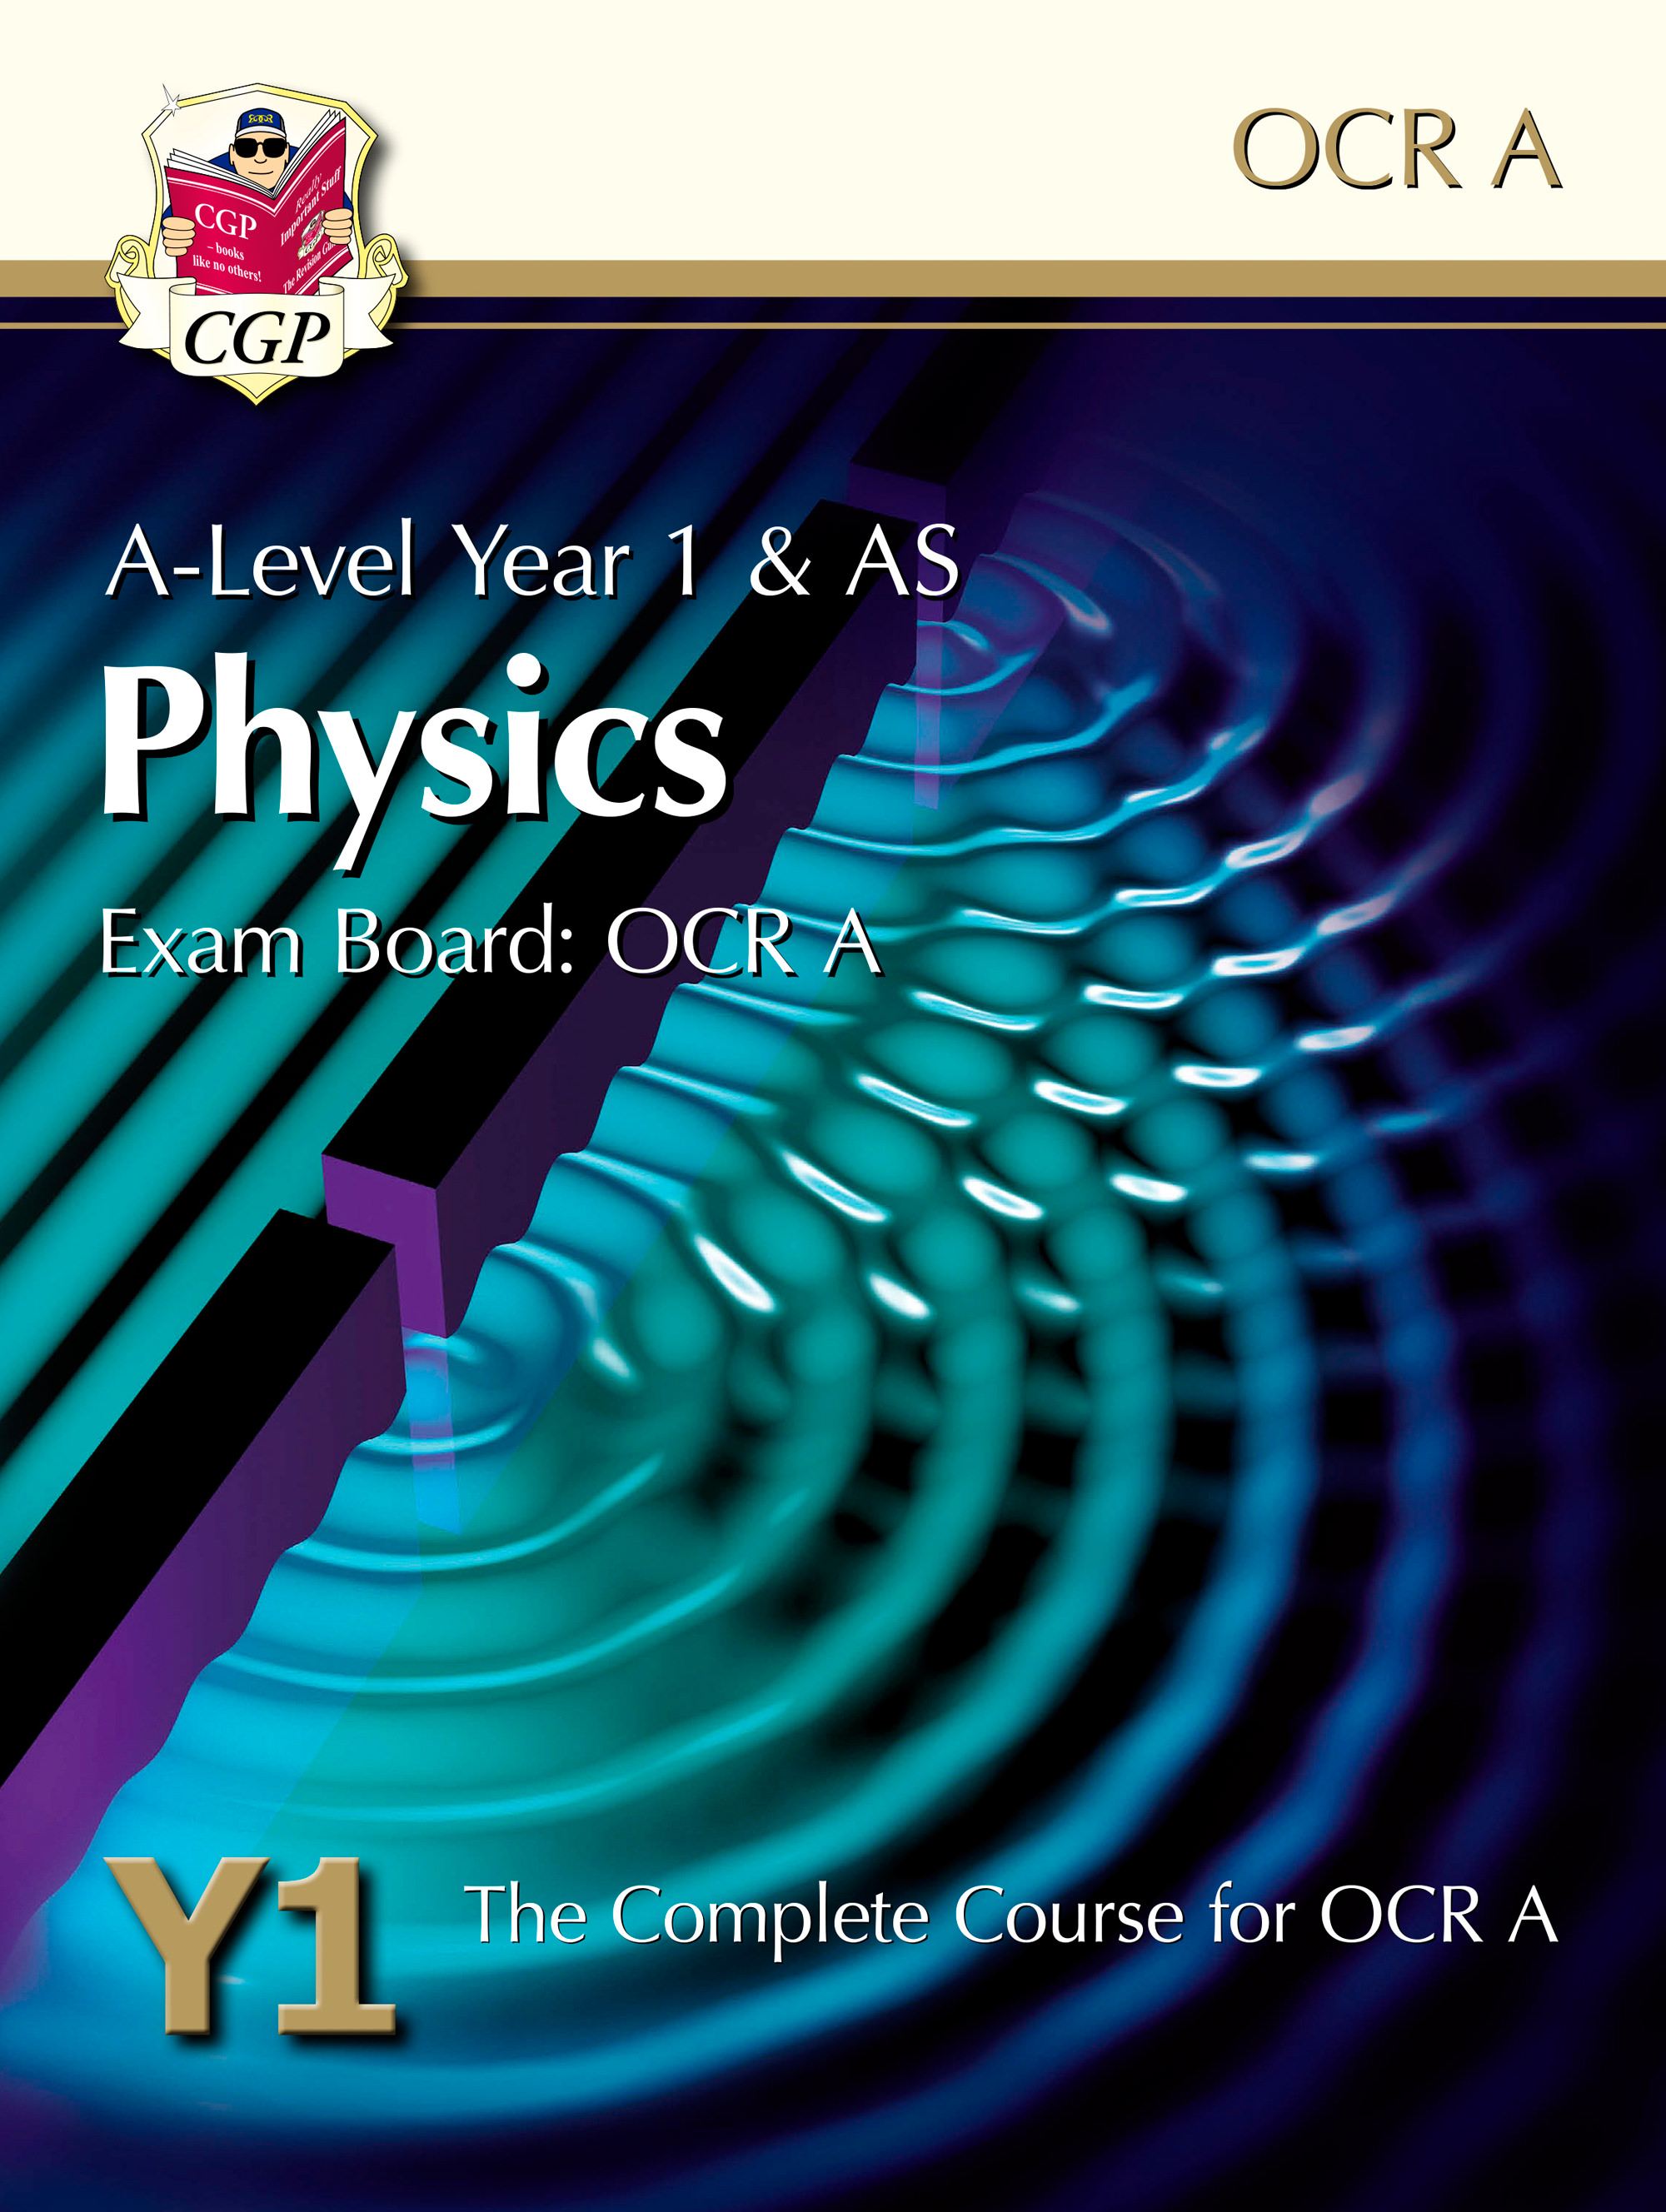 PRATB51DK - New A-Level Physics for OCR A: Year 1 & AS Student Book